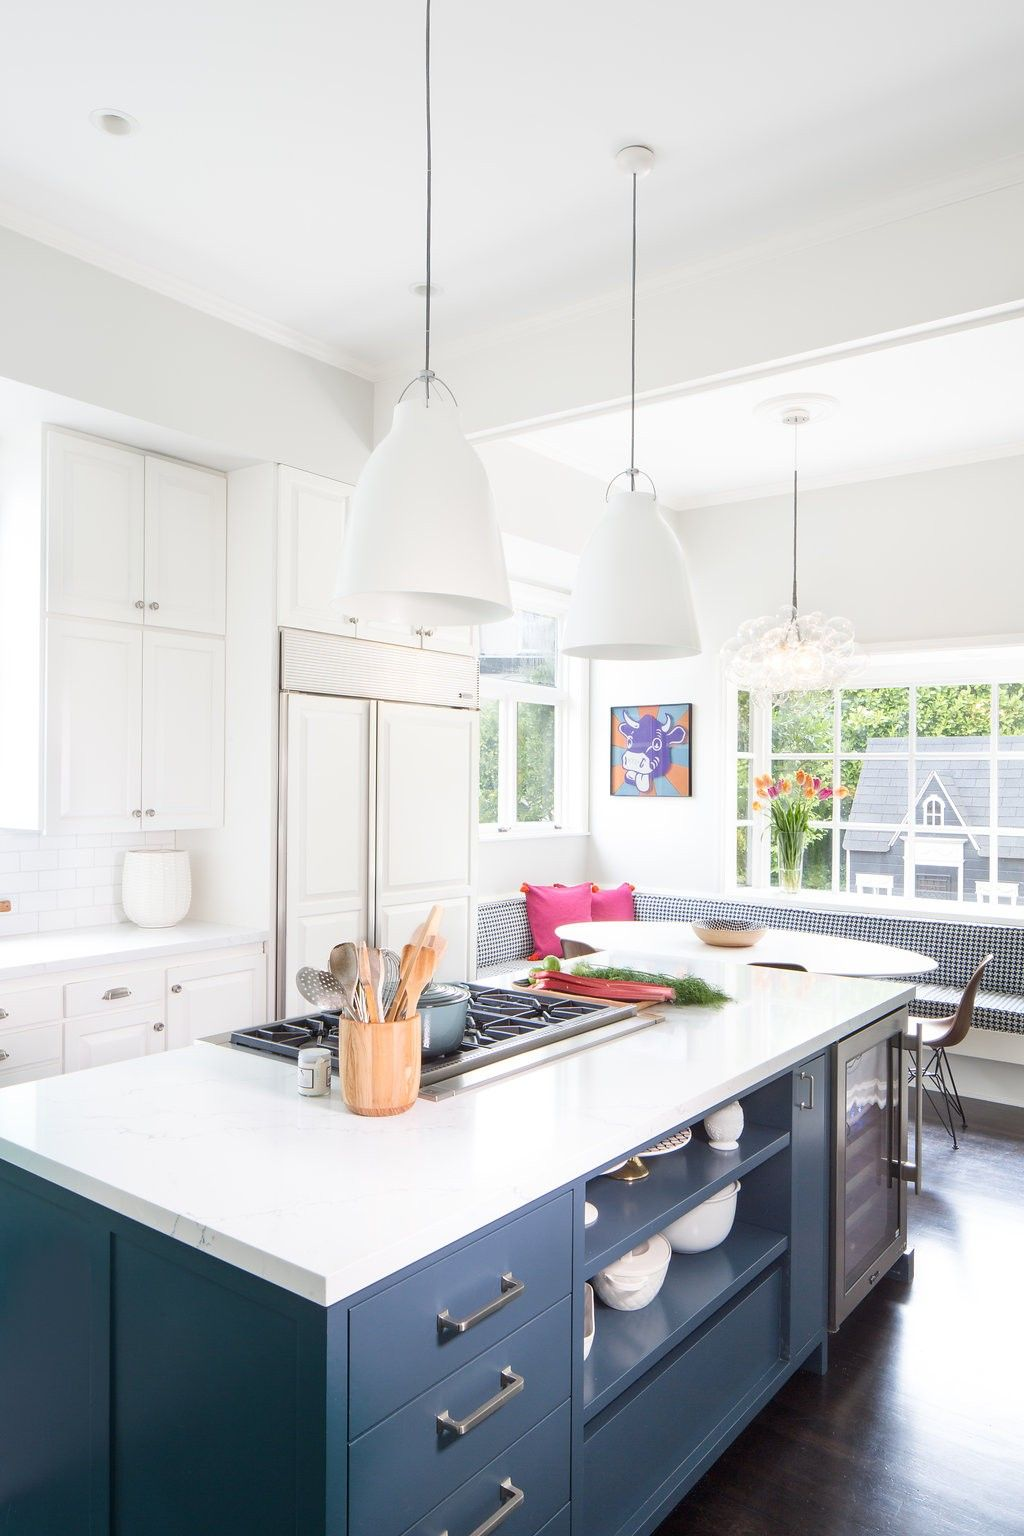 Modern Lighting And A Gorgeous Navy Blue Island At The Laurelhurst Kitchen  By Distinctive Kitchens.